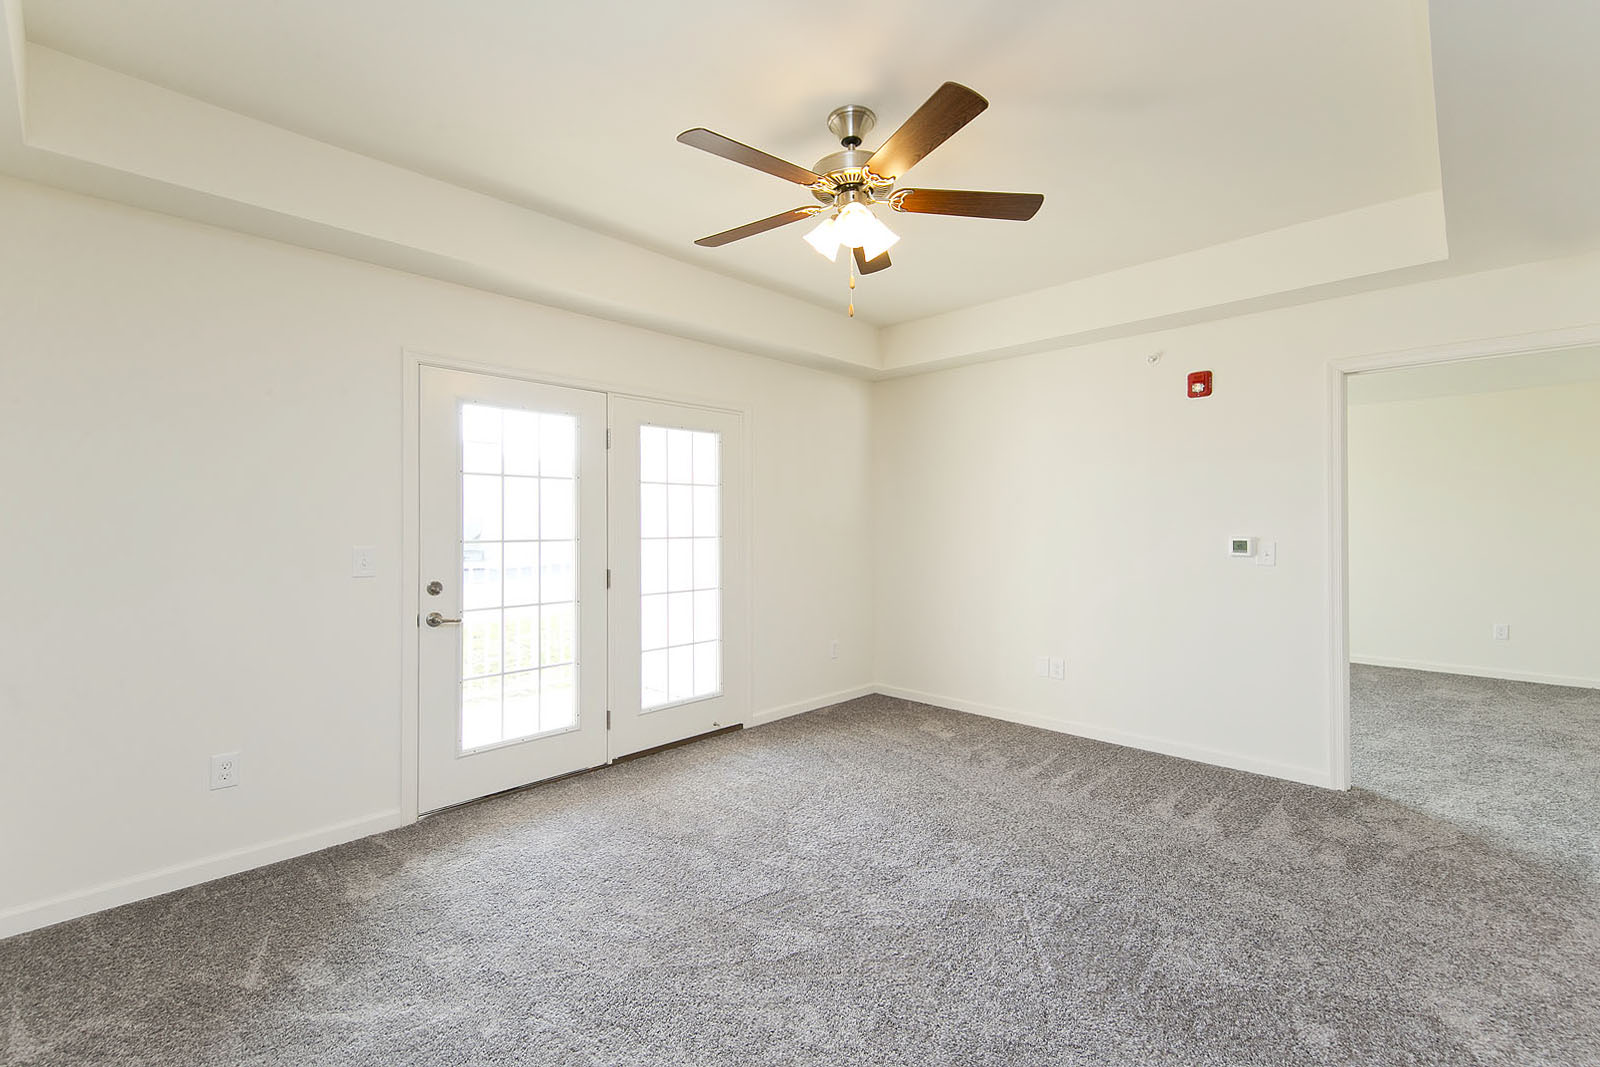 Priority Place Apartments - Martinsburg, WV